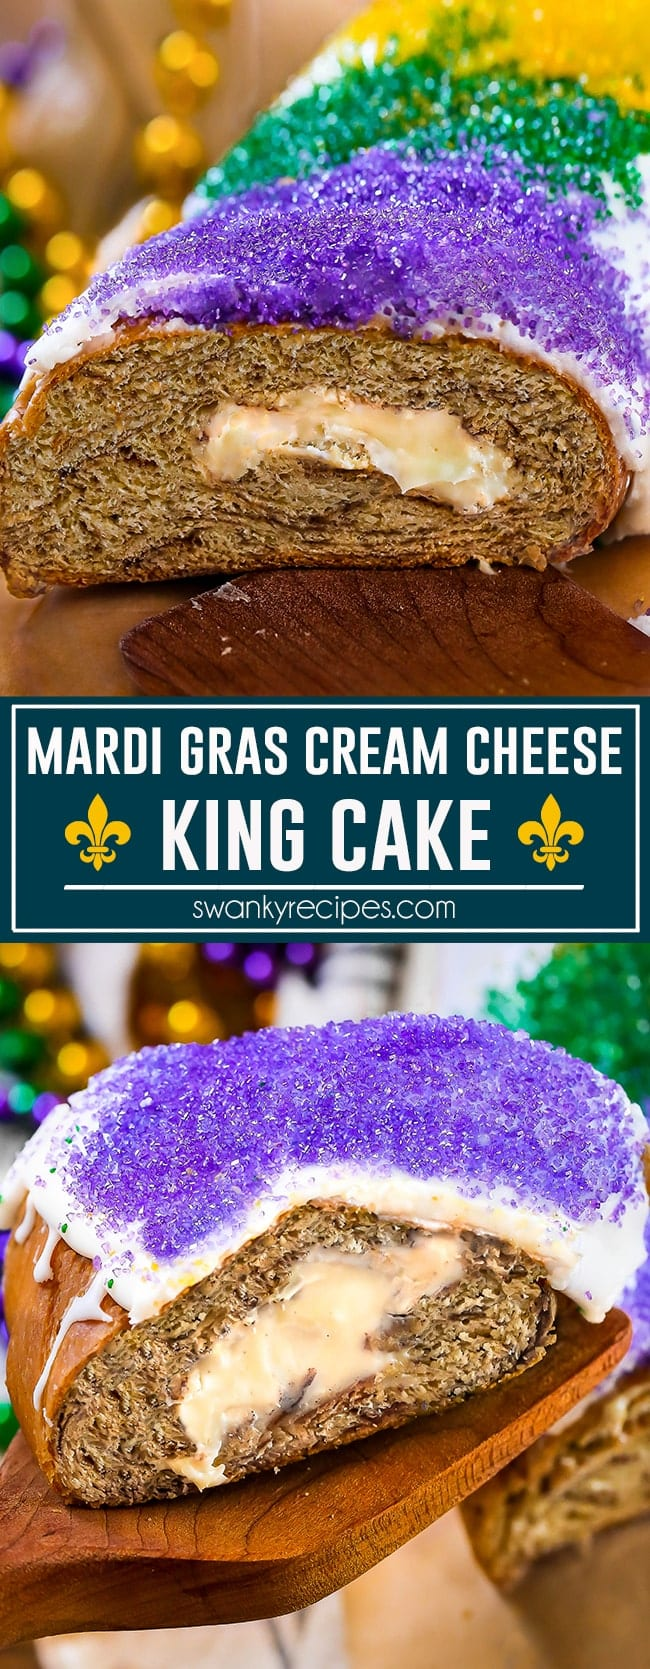 King Cake - Classic New Orleans Mardi Gras King Cake dessert for Fat Tuesday. Better than local French Quarter local bakeries. Cinnamon cream cheese filled pastry bread. How to make king cake recipe.